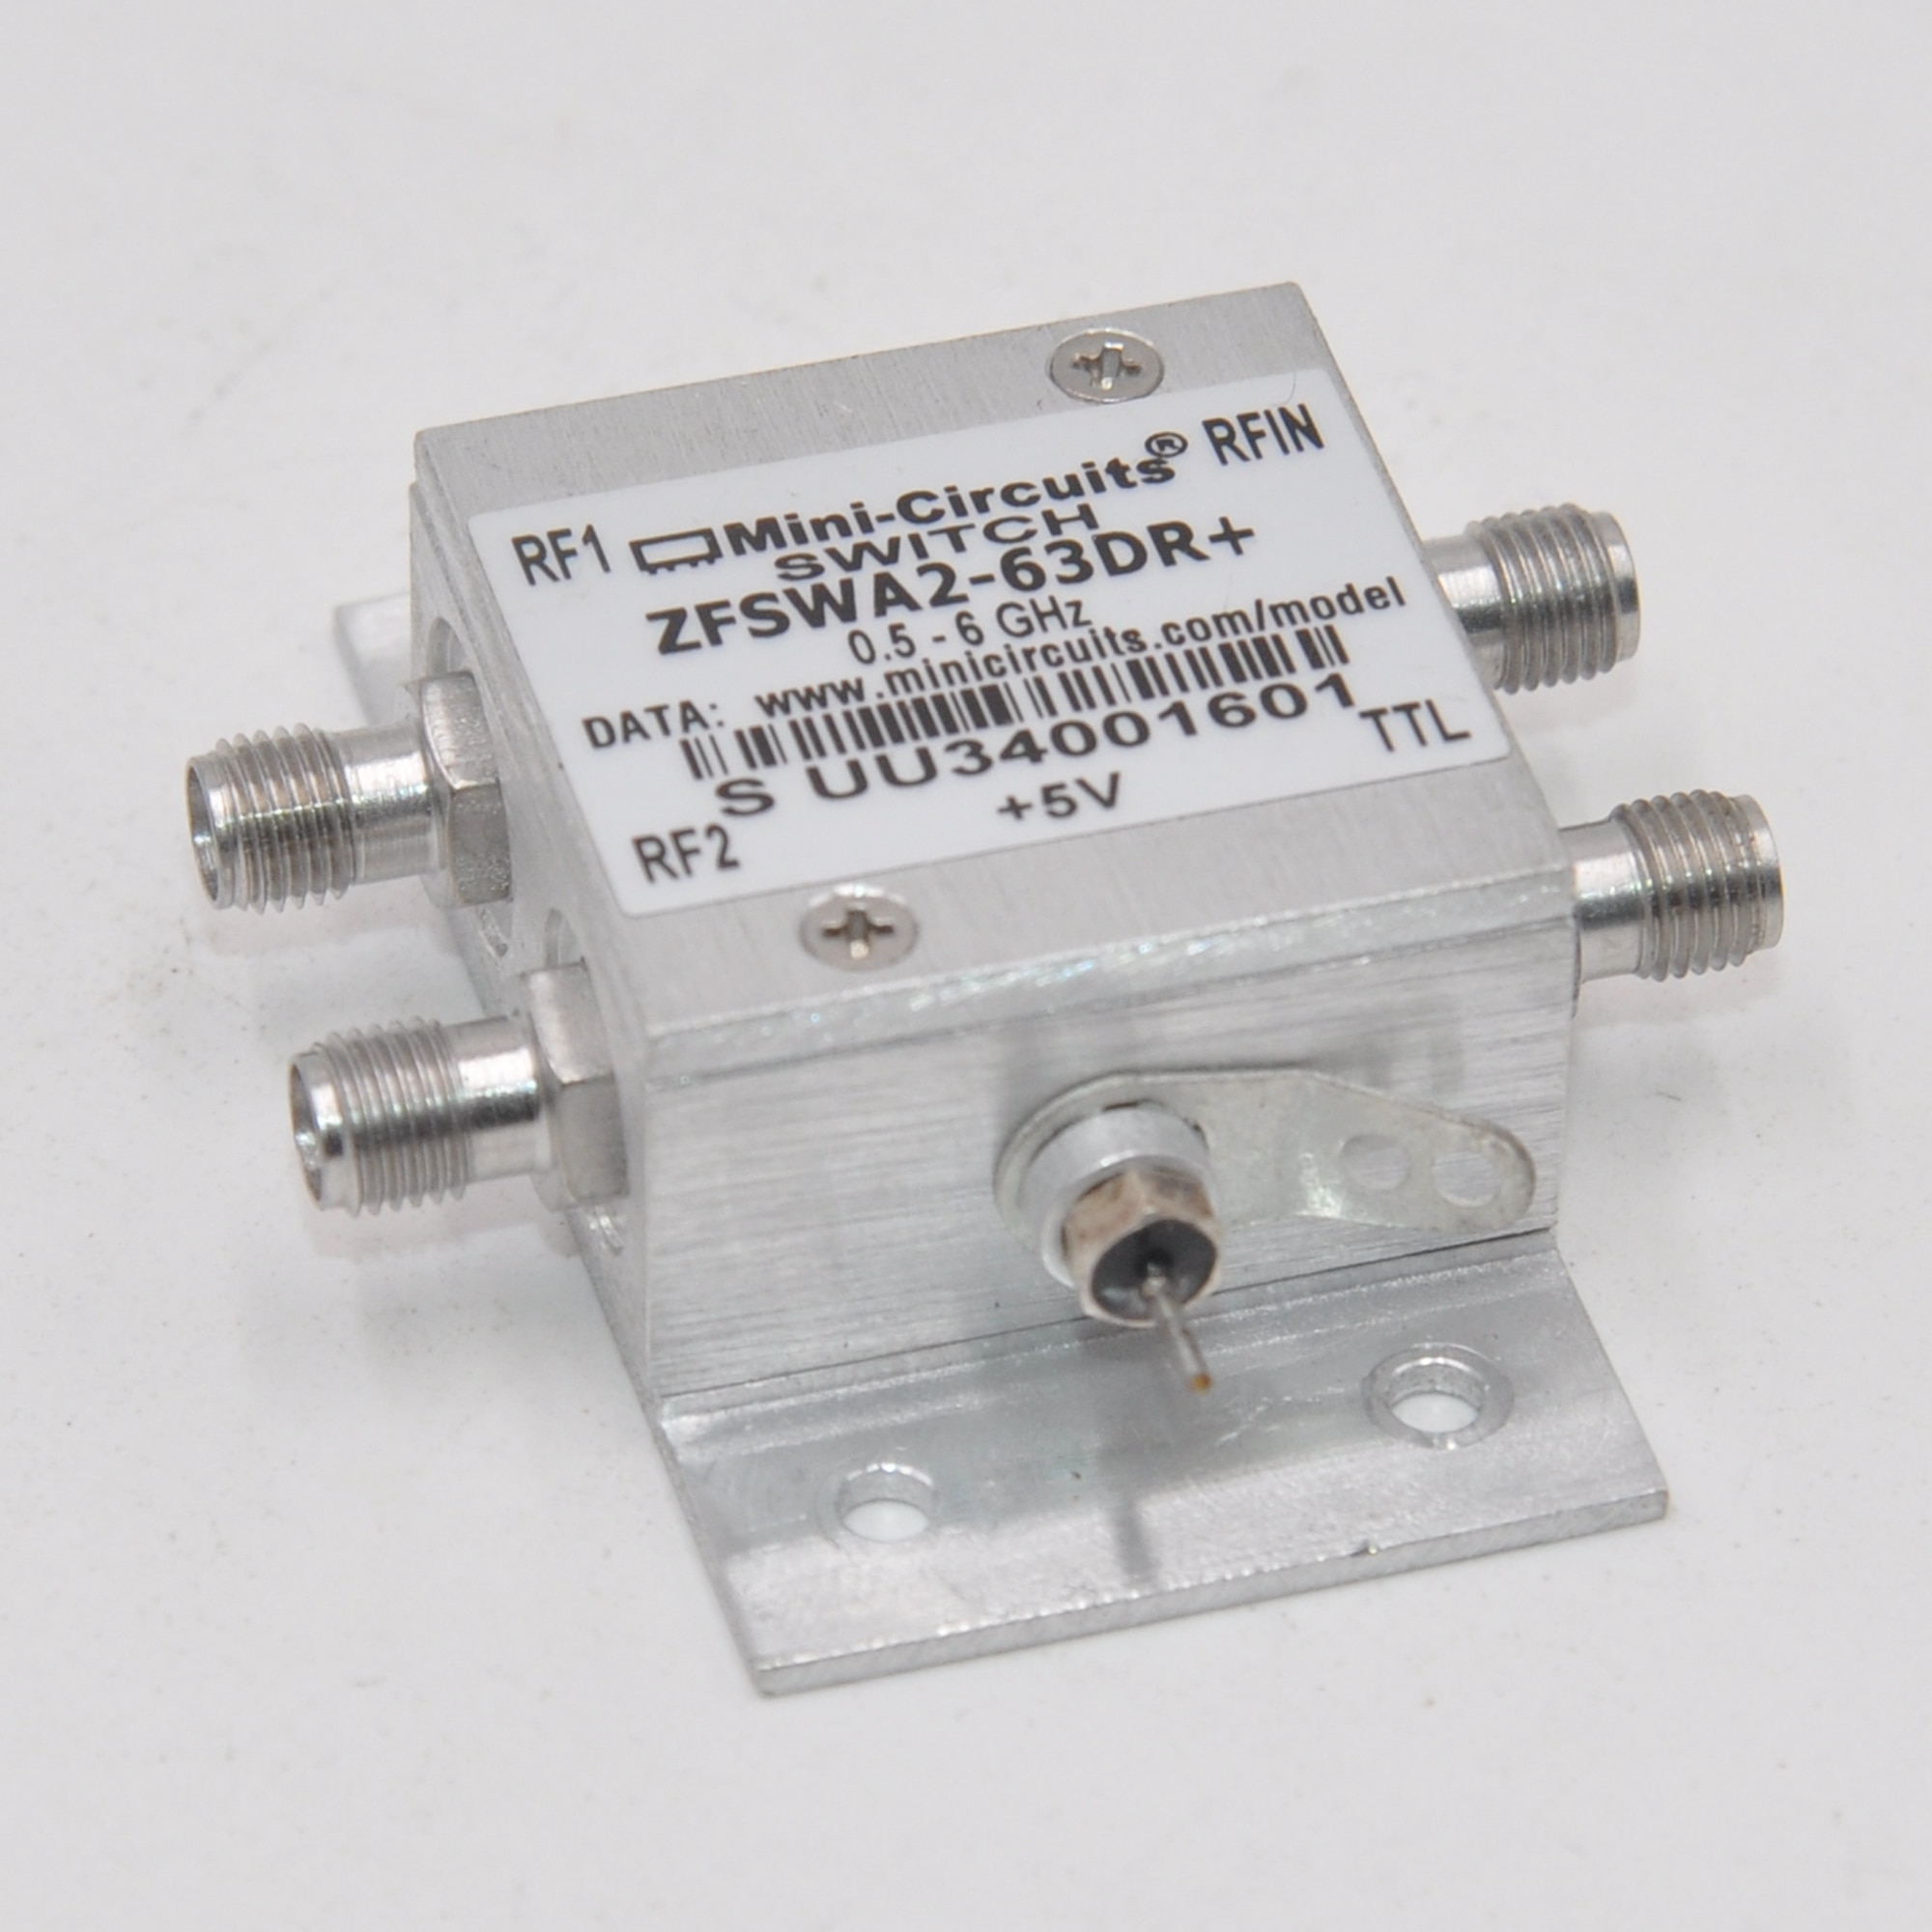 MINI-Clrcults switch driver SMA shape memory alloy RoHS connector ZFSWA2-63DR +